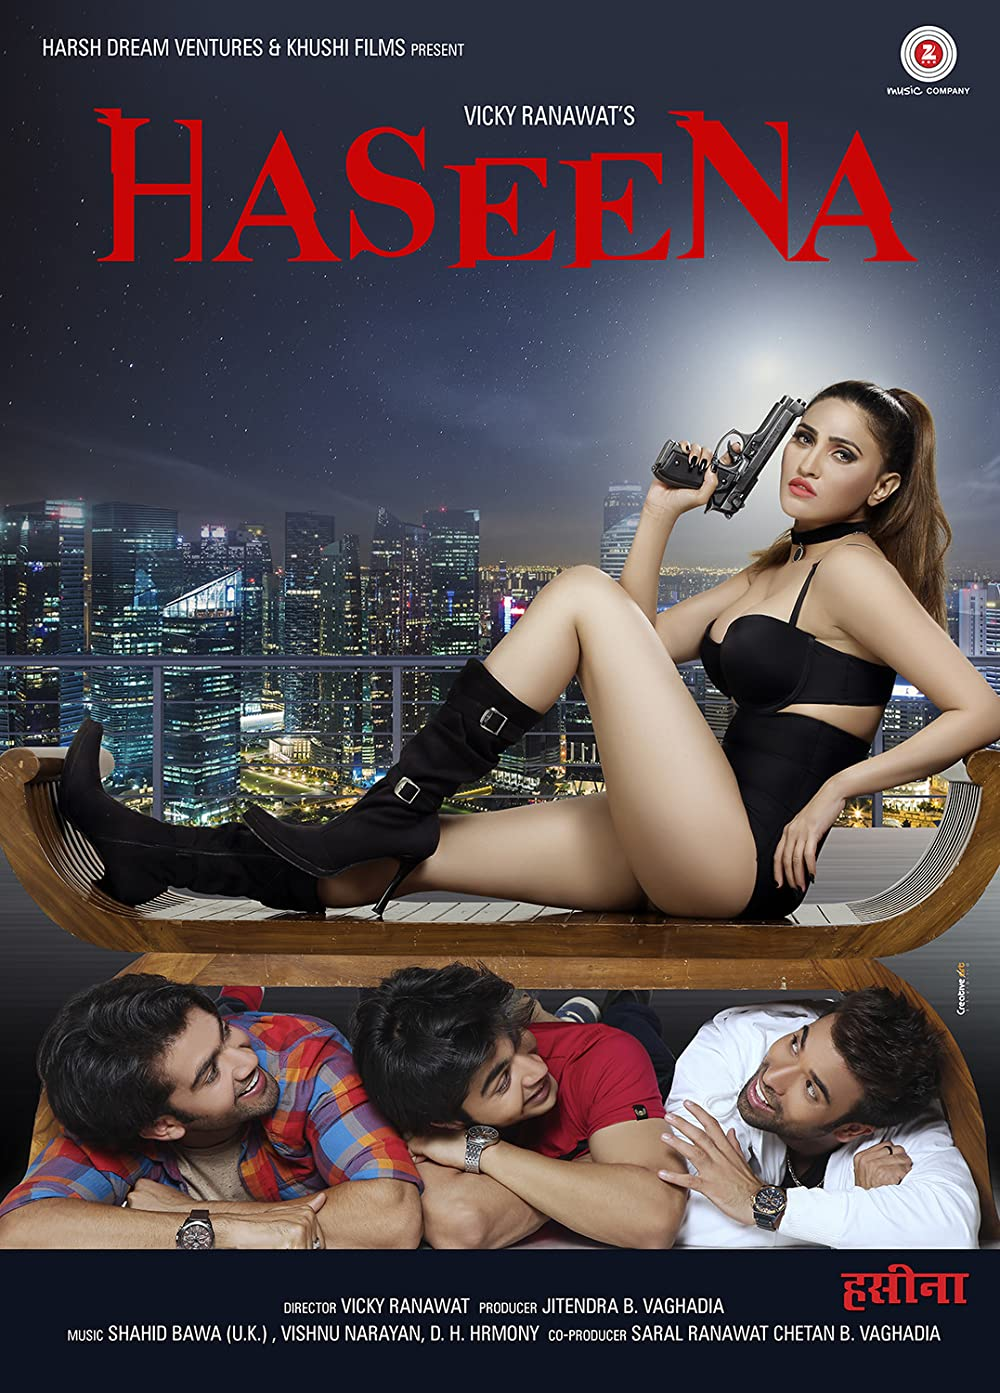 18+ Haseena 2018 Hindi 720p HDRip 800MB Download